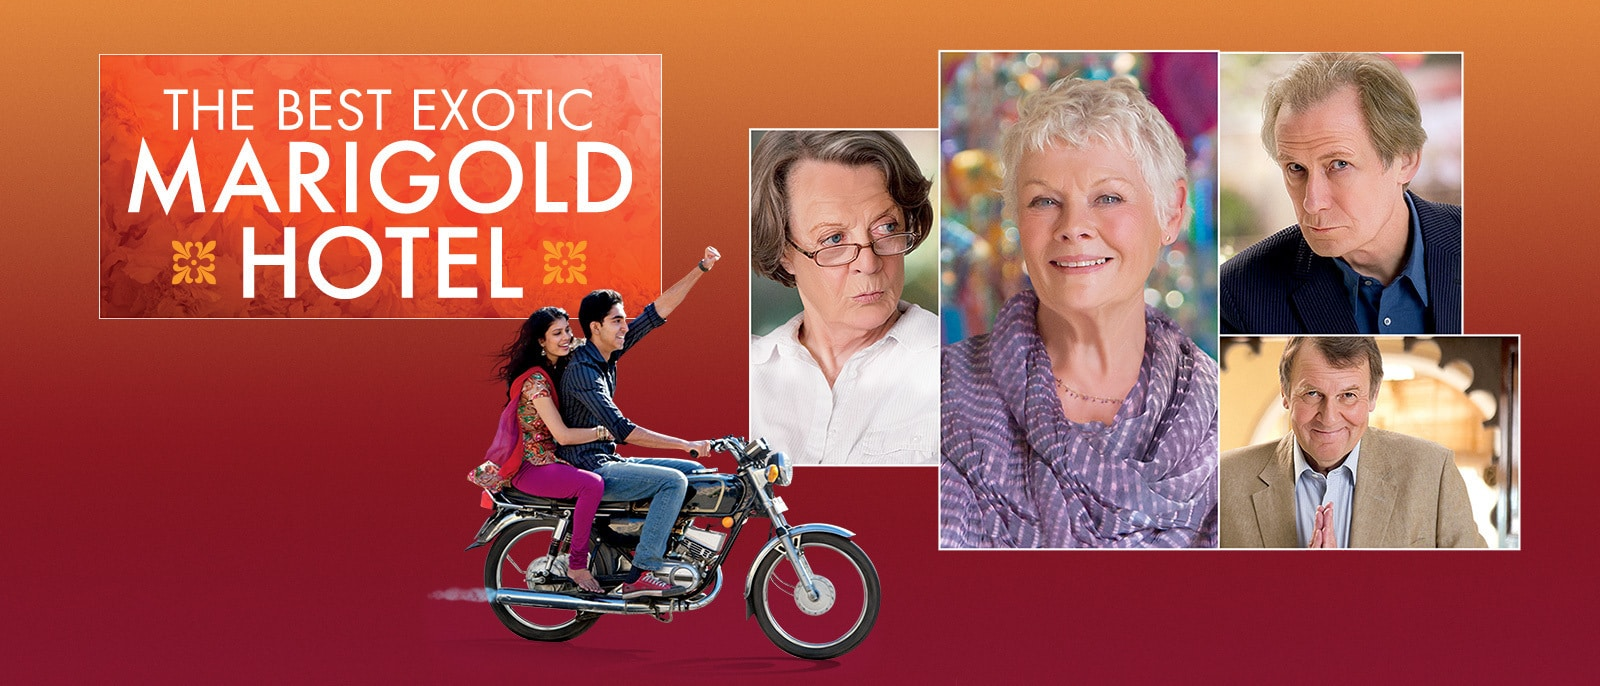 The Best Exotic Marigold Hotel Hero